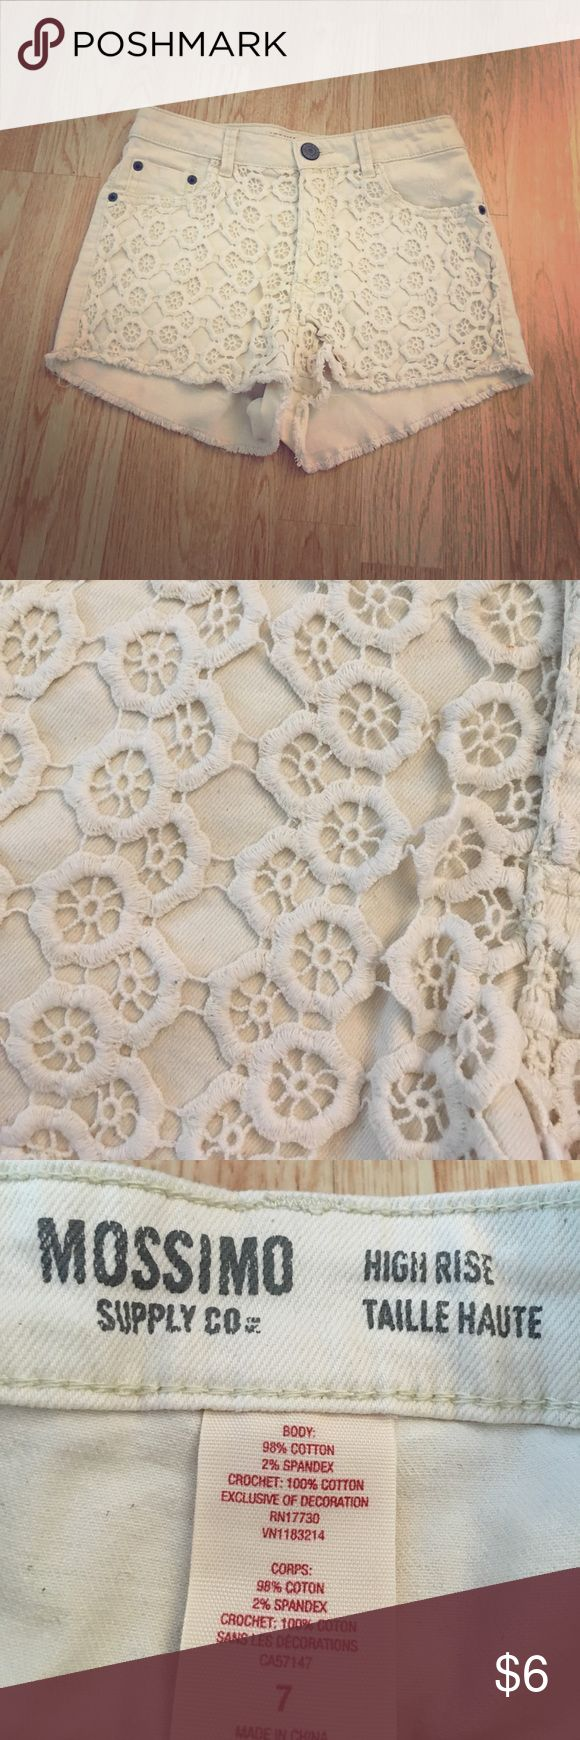 🎀JUST ADDED🎀 HIGH RISE CREAM LACE SHORTS Good condition Mossimo Supply Co Shorts